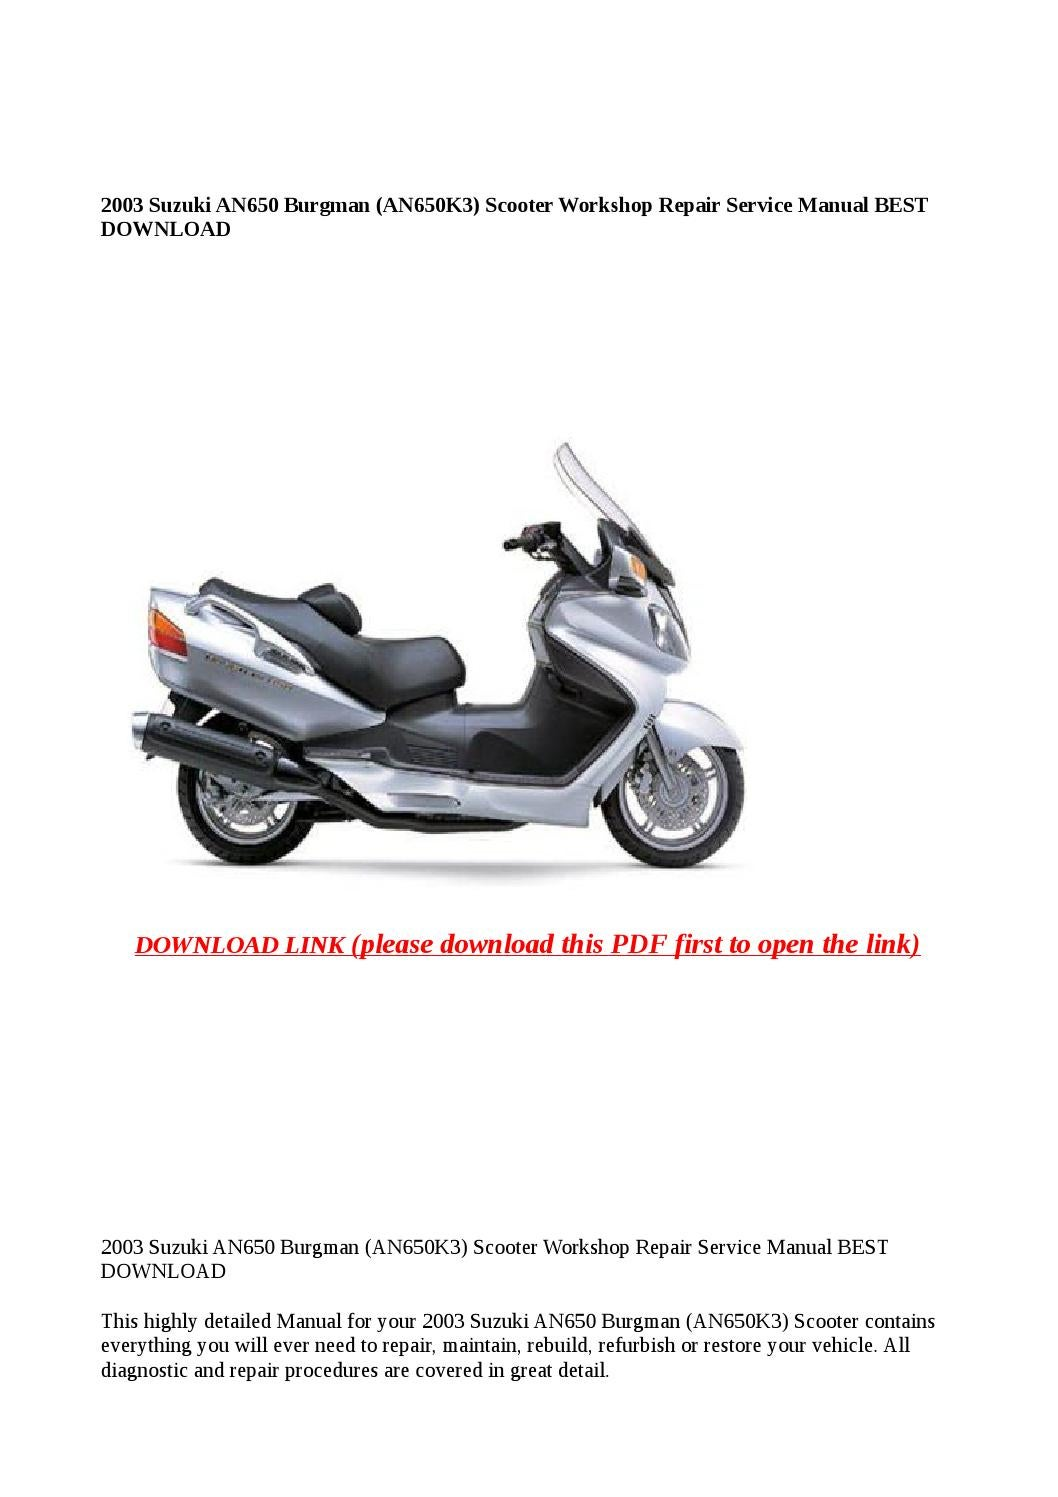 service manual suzuki burgman 650 manuals library for free rh 4free articles com 2003 Suzuki Burgman 650 Specs 2005 Suzuki Burgman 650